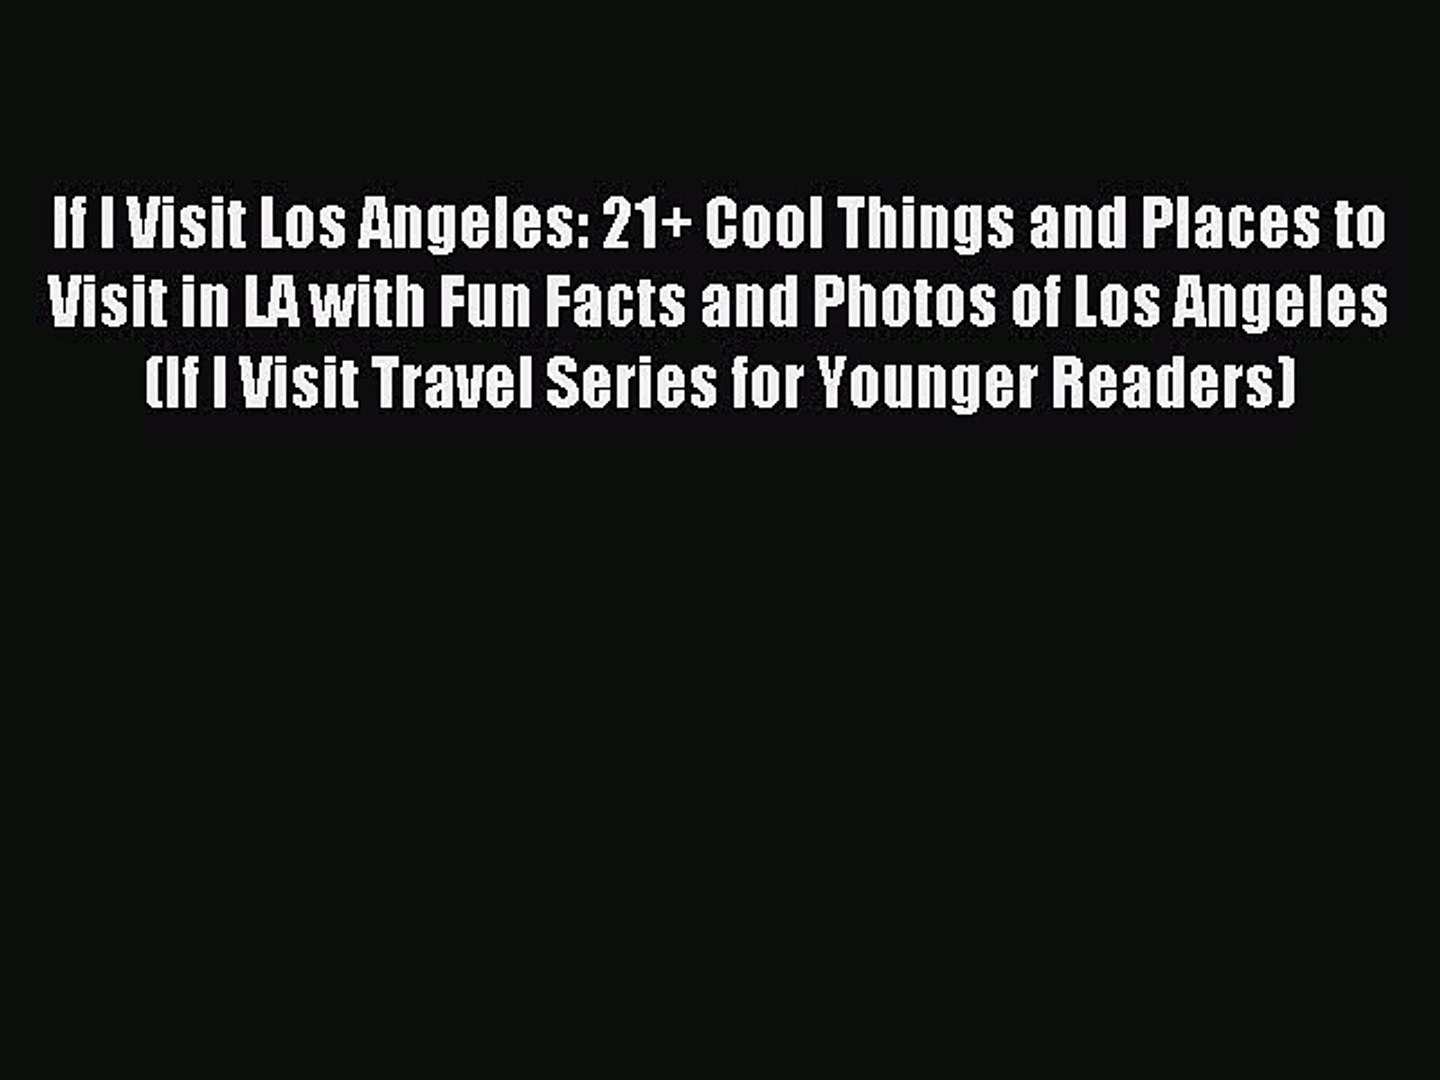 Read If I Visit Los Angeles: 21+ Cool Things and Places to Visit in LA with Fun Facts and Photos